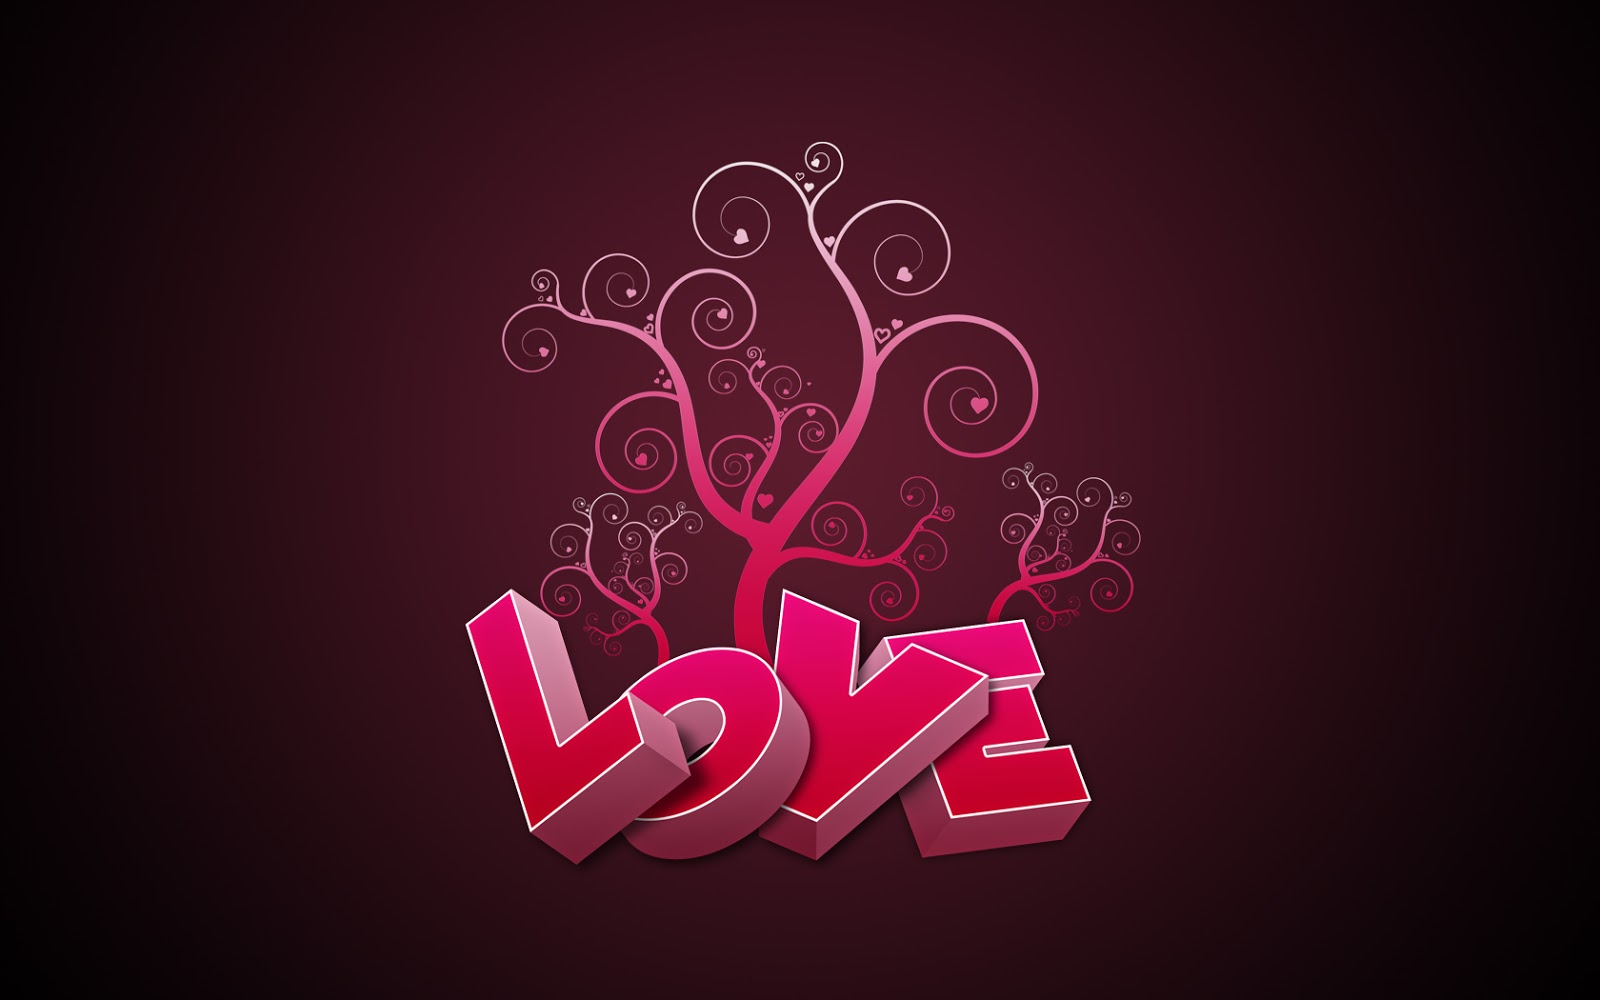 Love You Too Hd Wallpaper : Sms with Wallpapers: 12/28/13